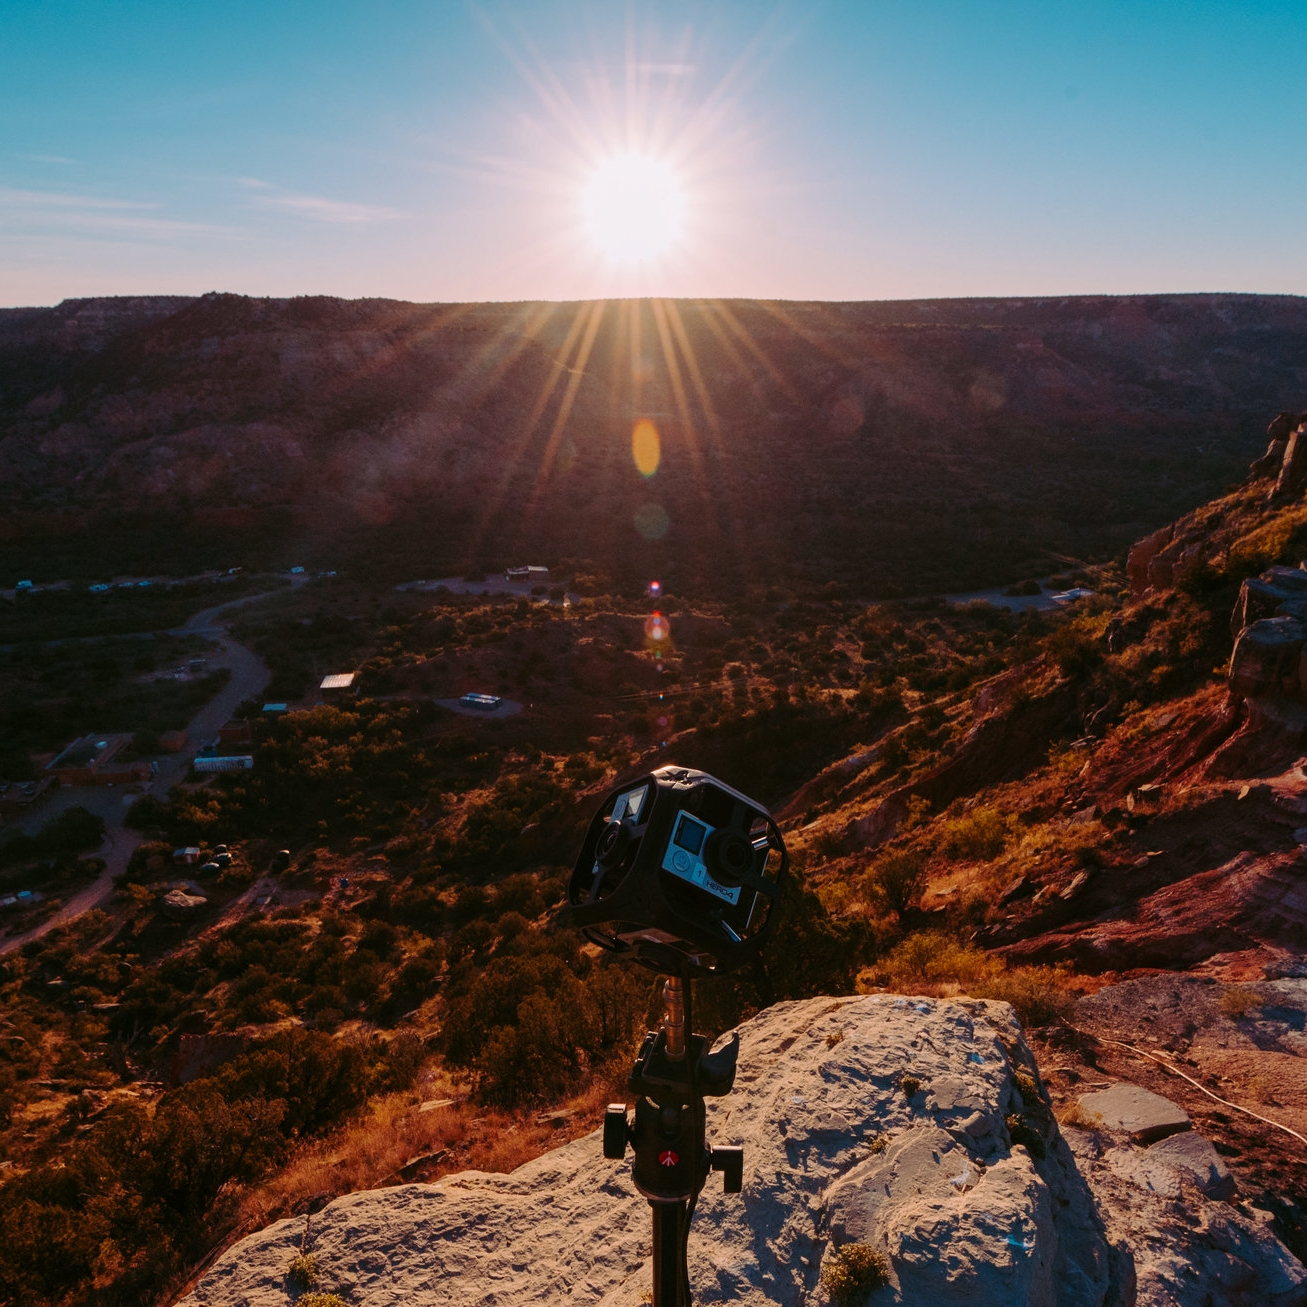 A GoPro 360-degree camera records sunset at the Palo Duro Canyon State Park in Texas (Photo by Steve Johnson).